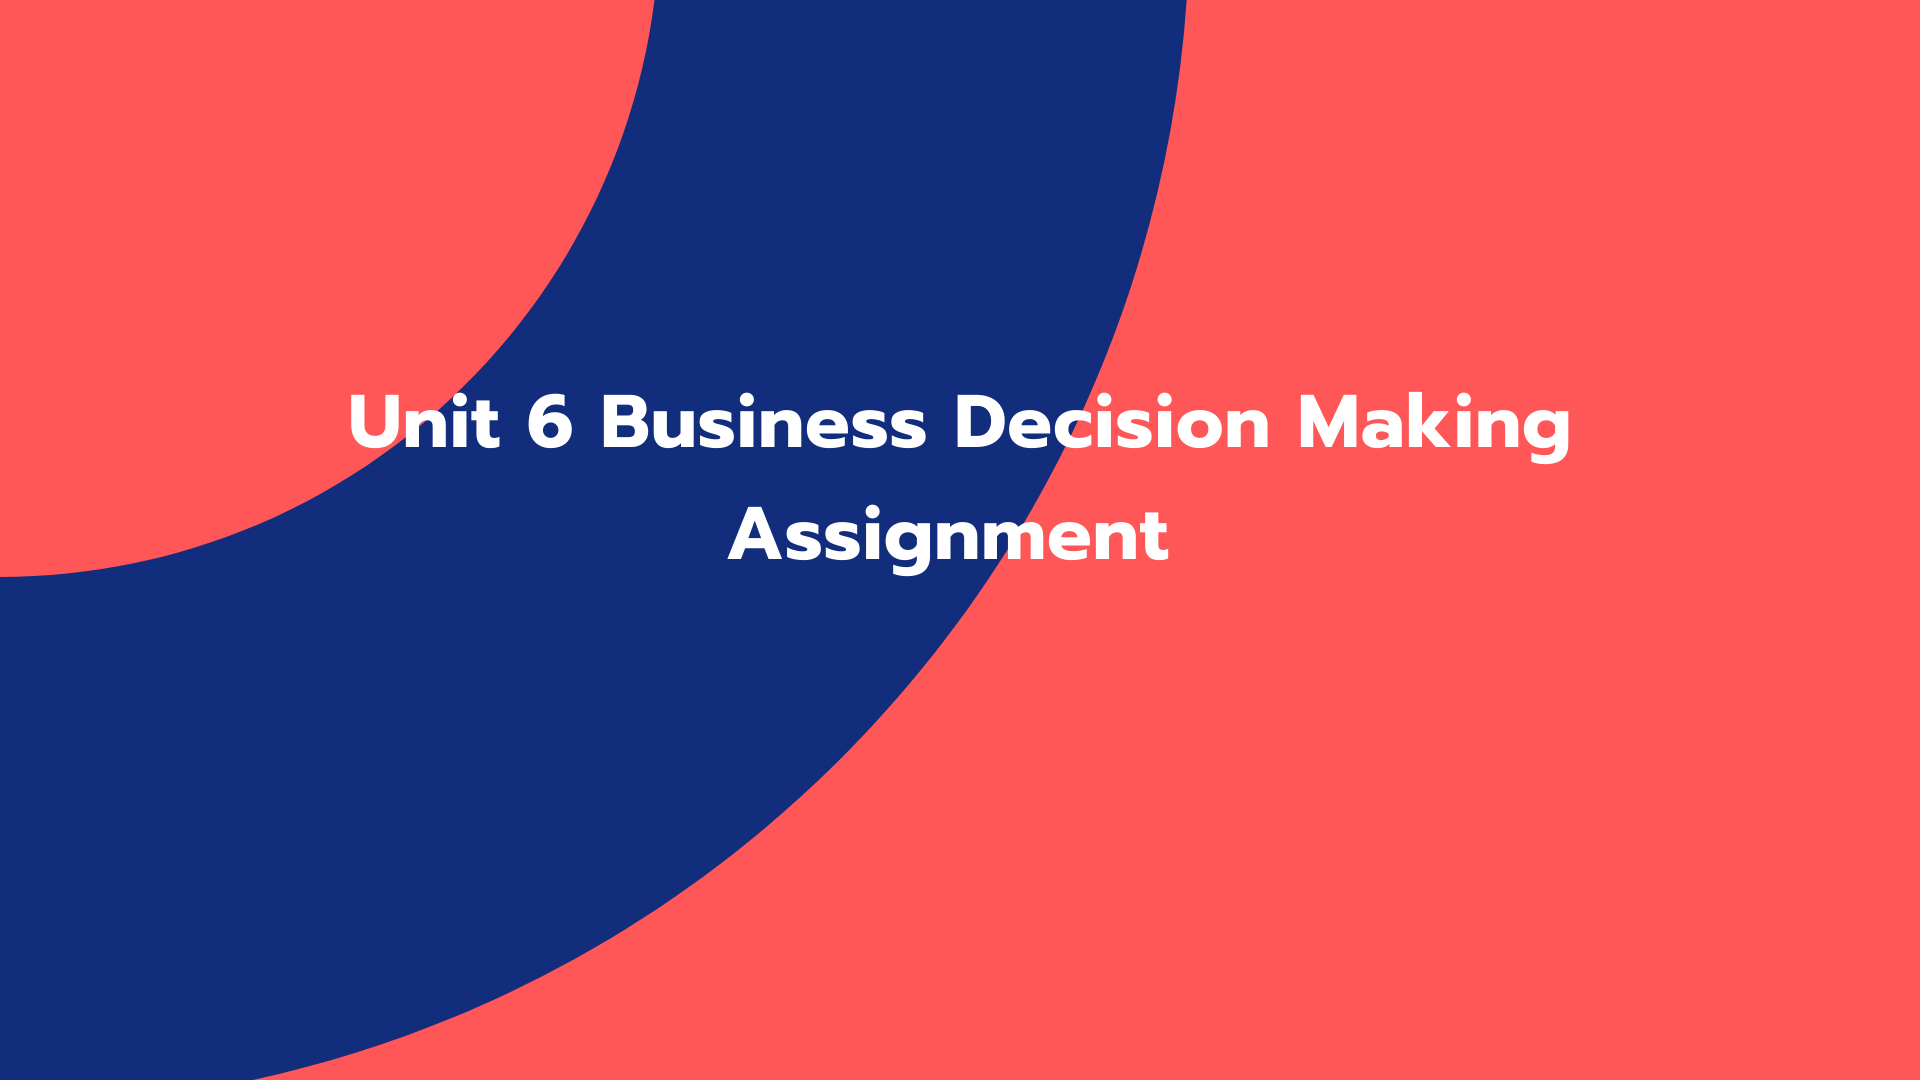 Unit 6 Business Decision Making Assignment